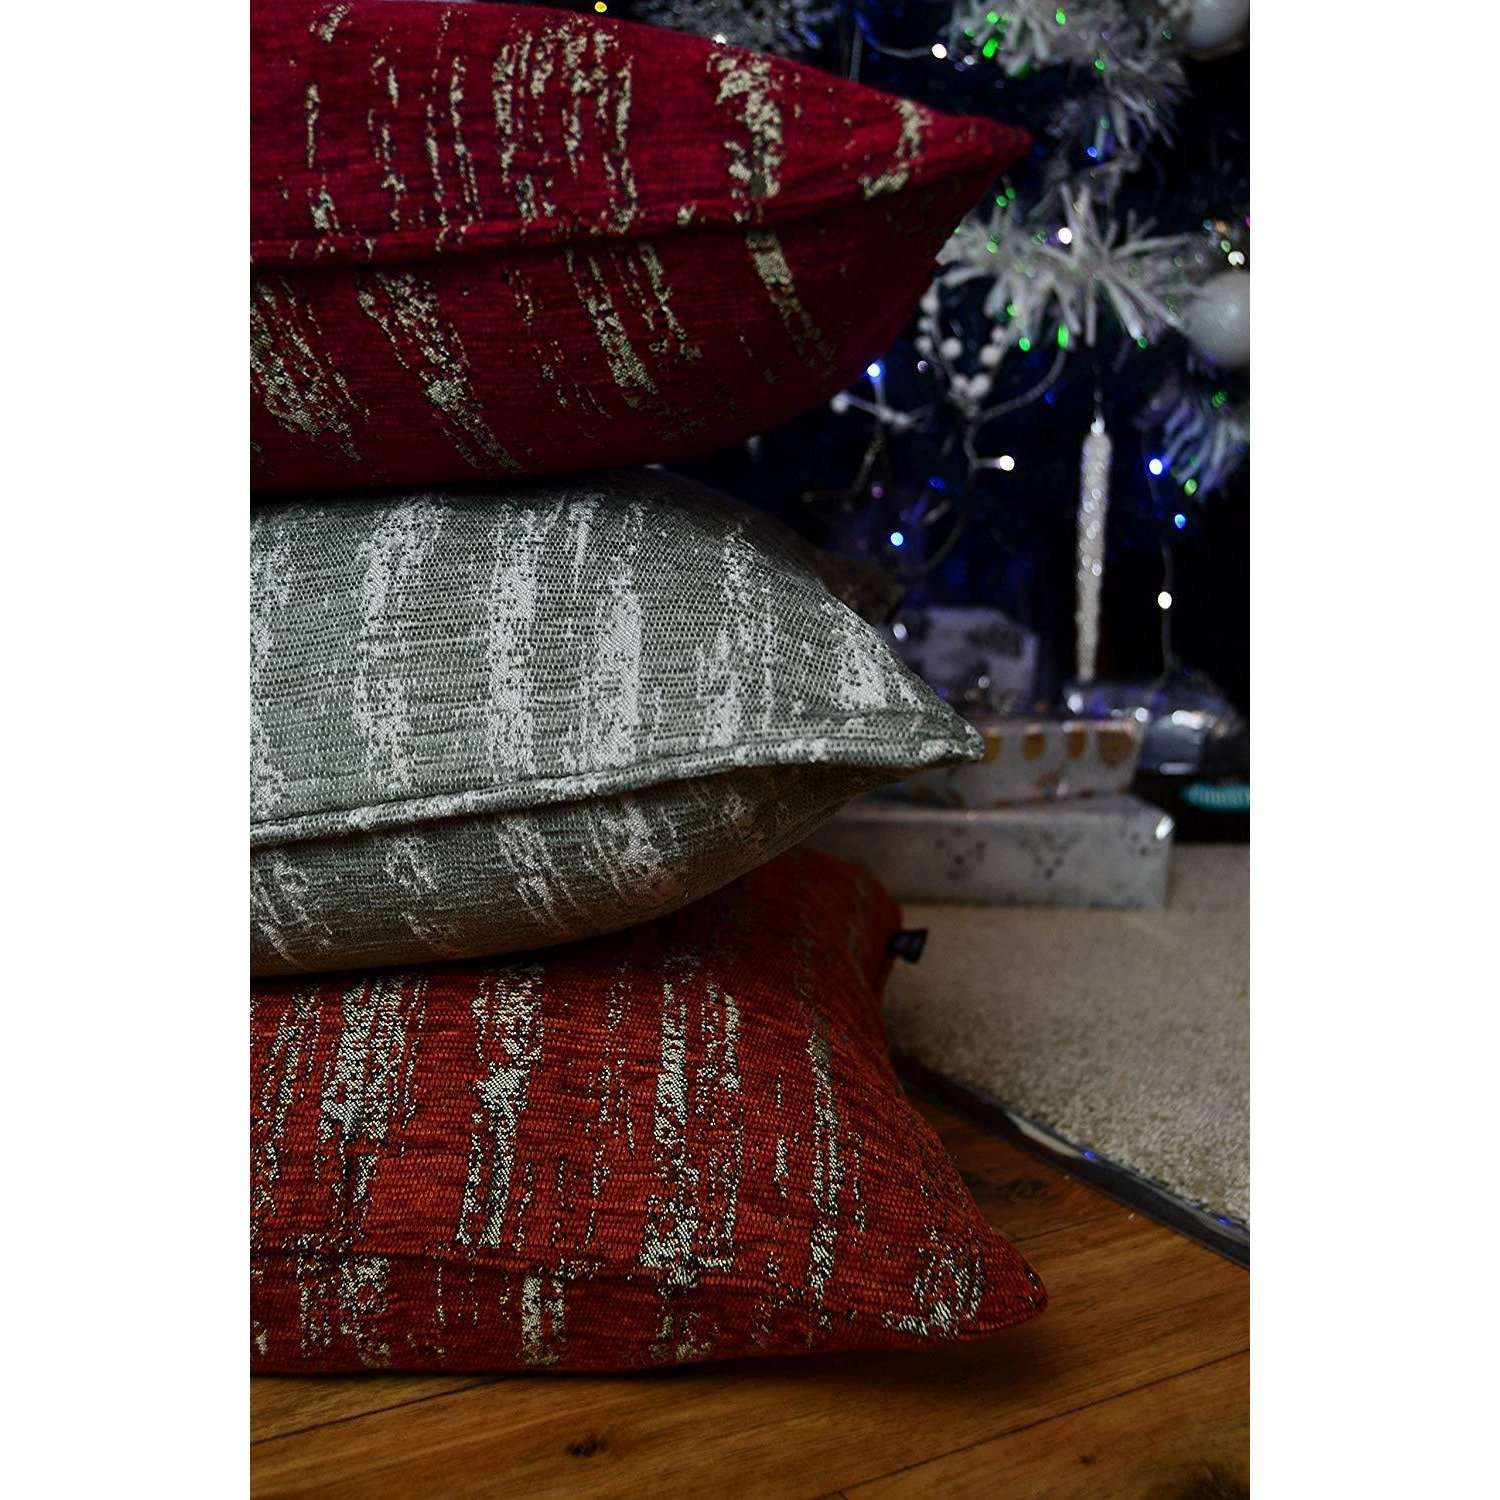 McAlister Textiles Textured Chenille Wine Red Cushion Cushions and Covers